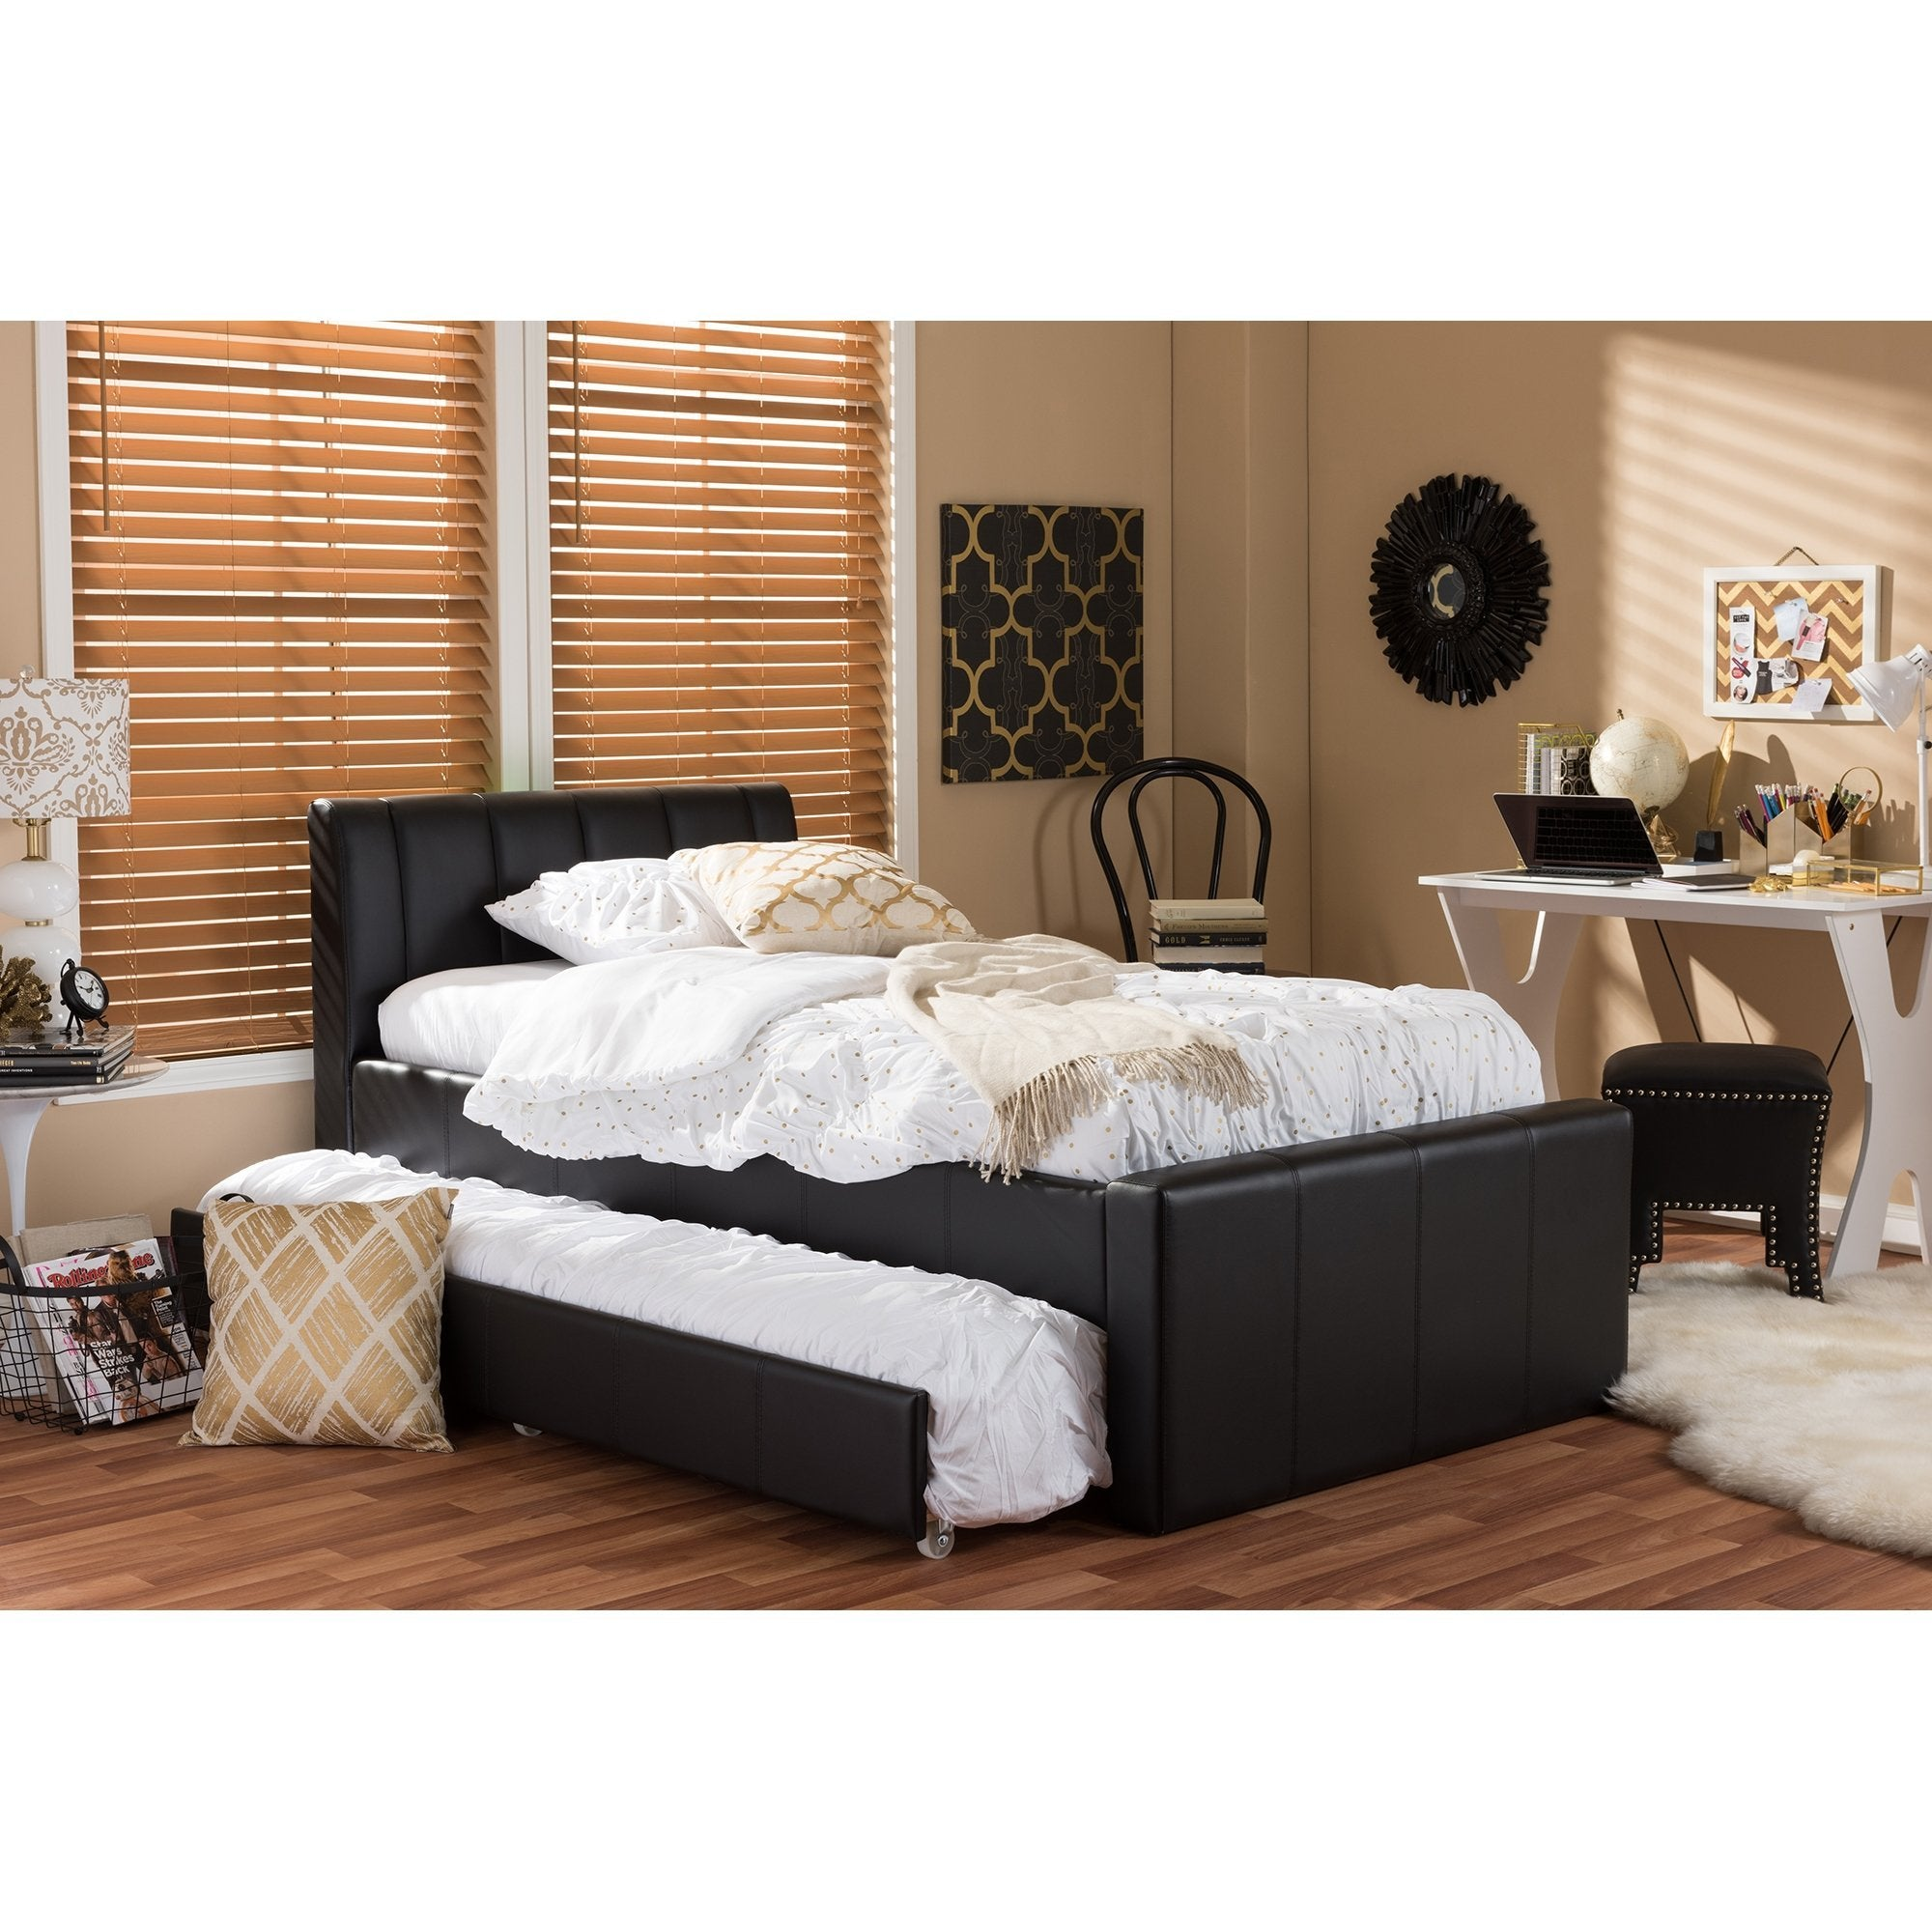 Porter Trundle Bed.